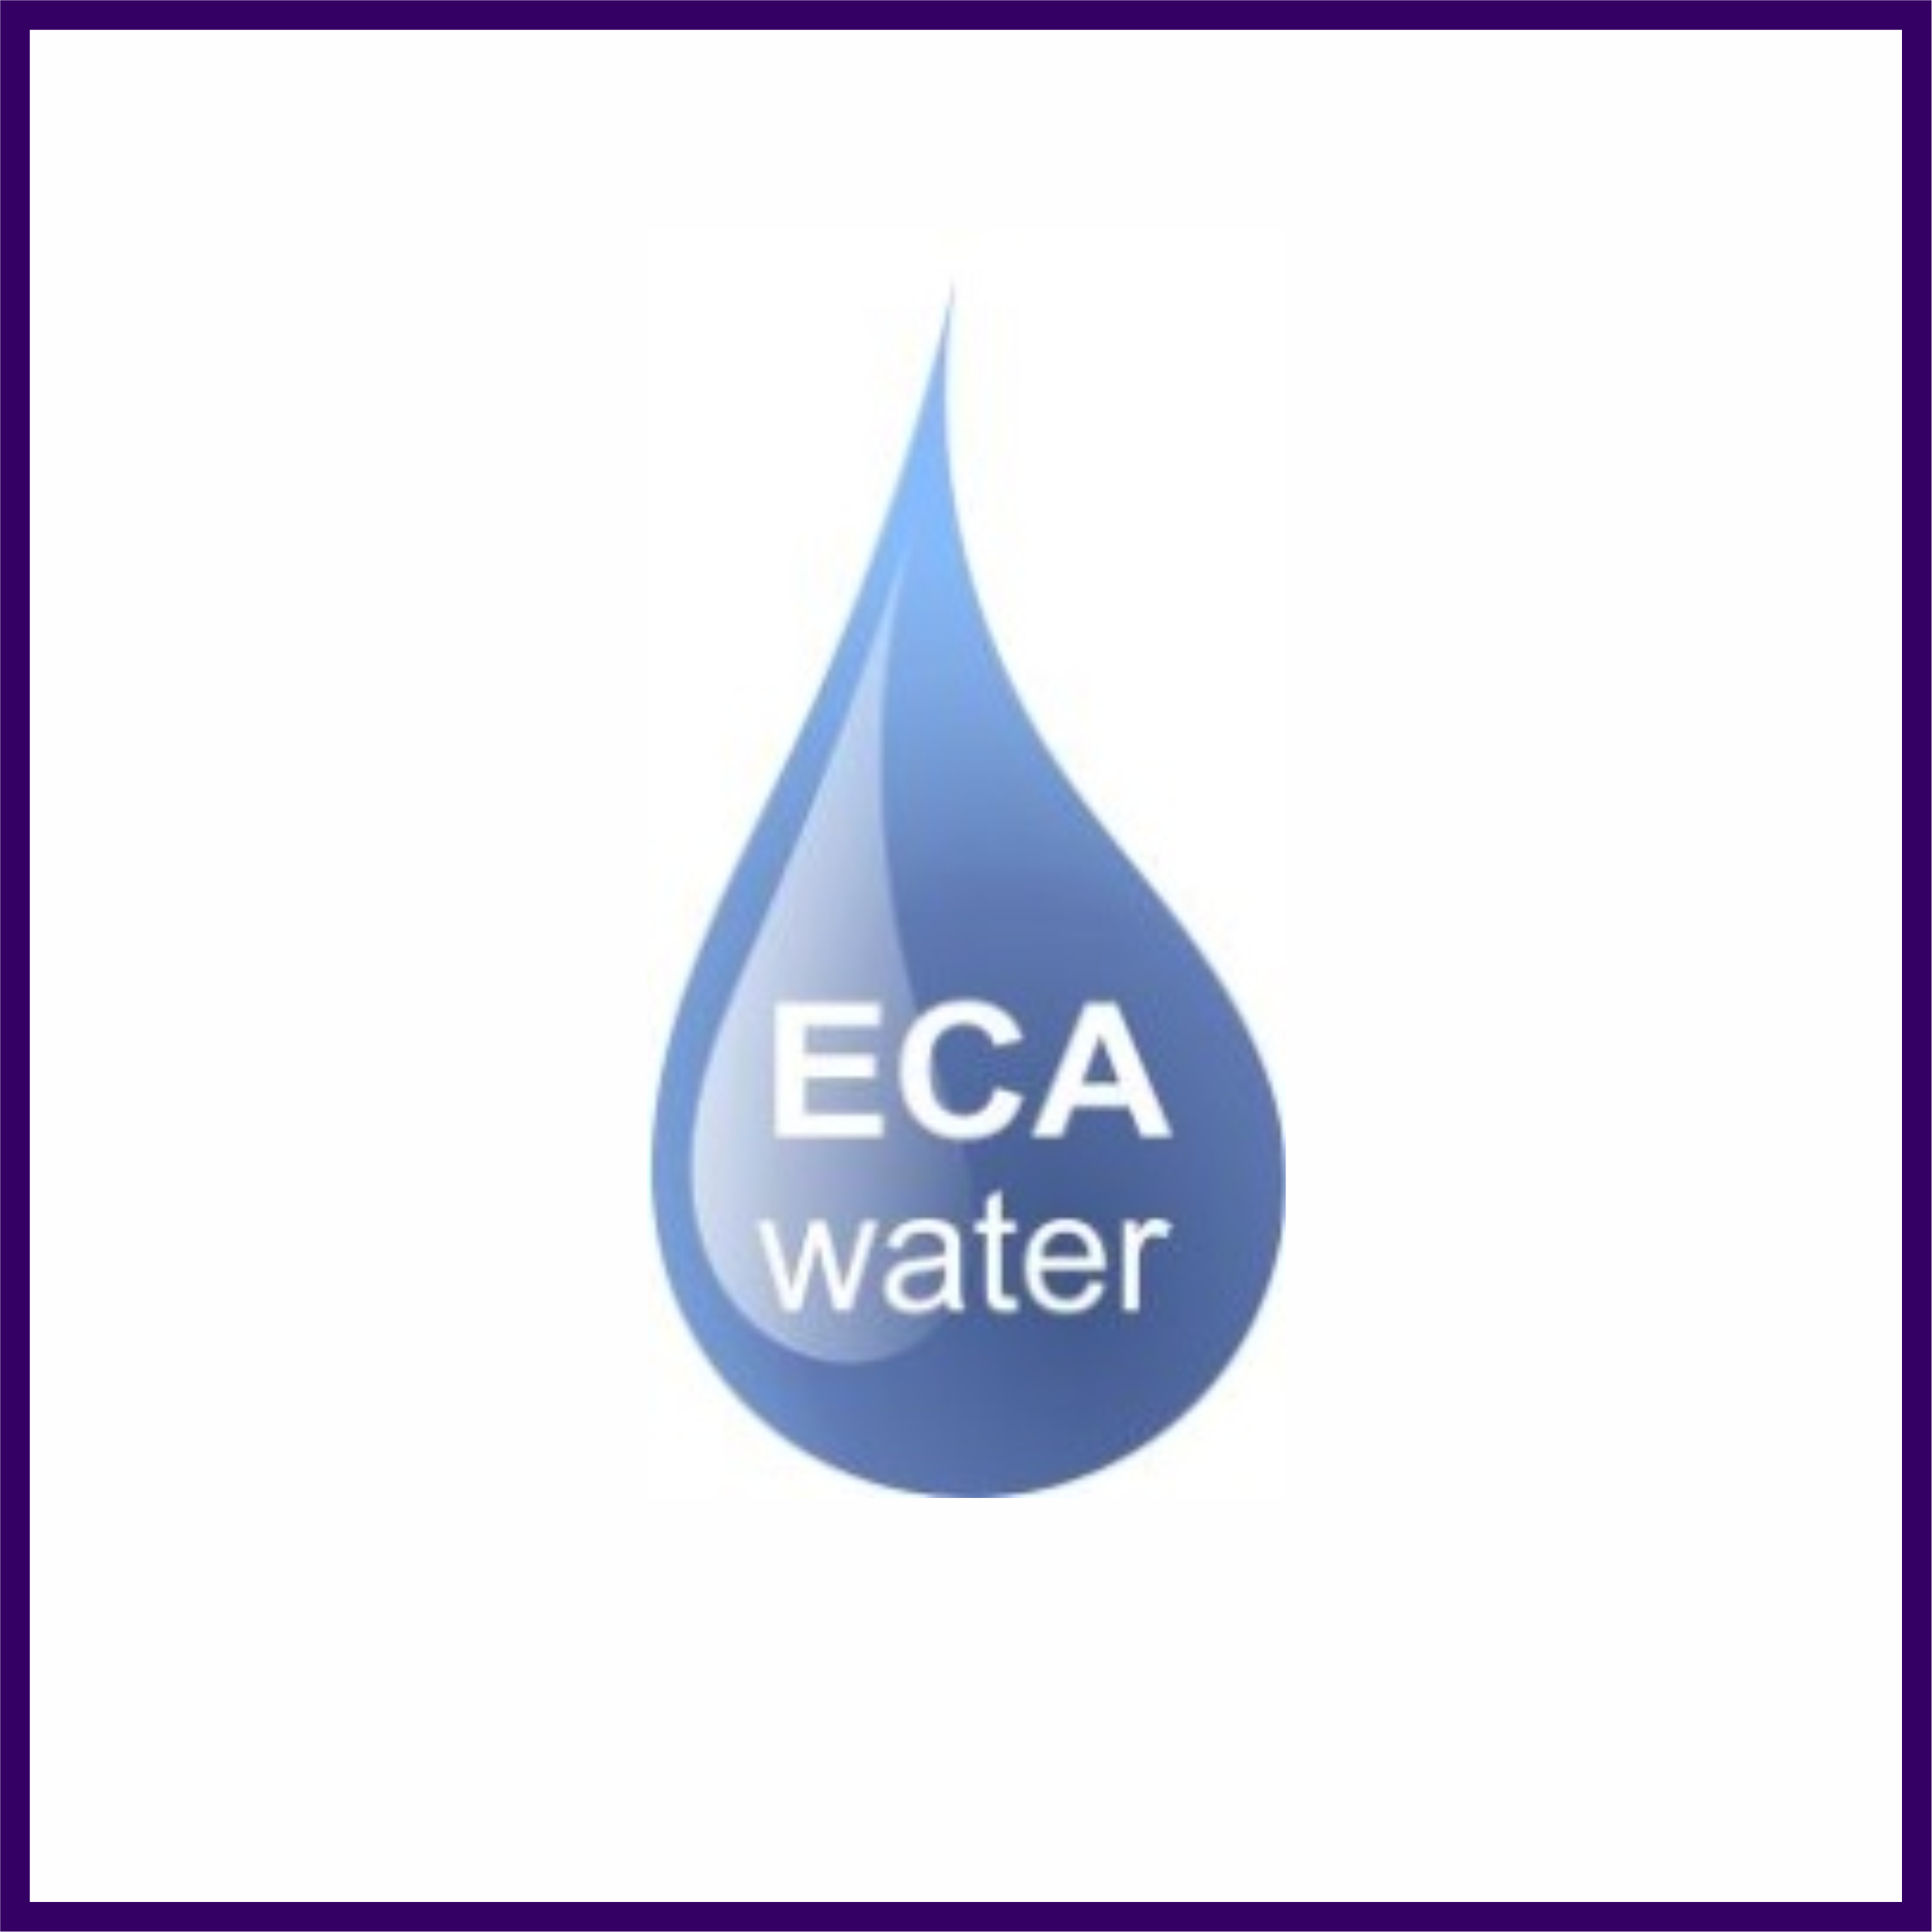 ECA Water - Sanitizer Manufacturer and Supplier